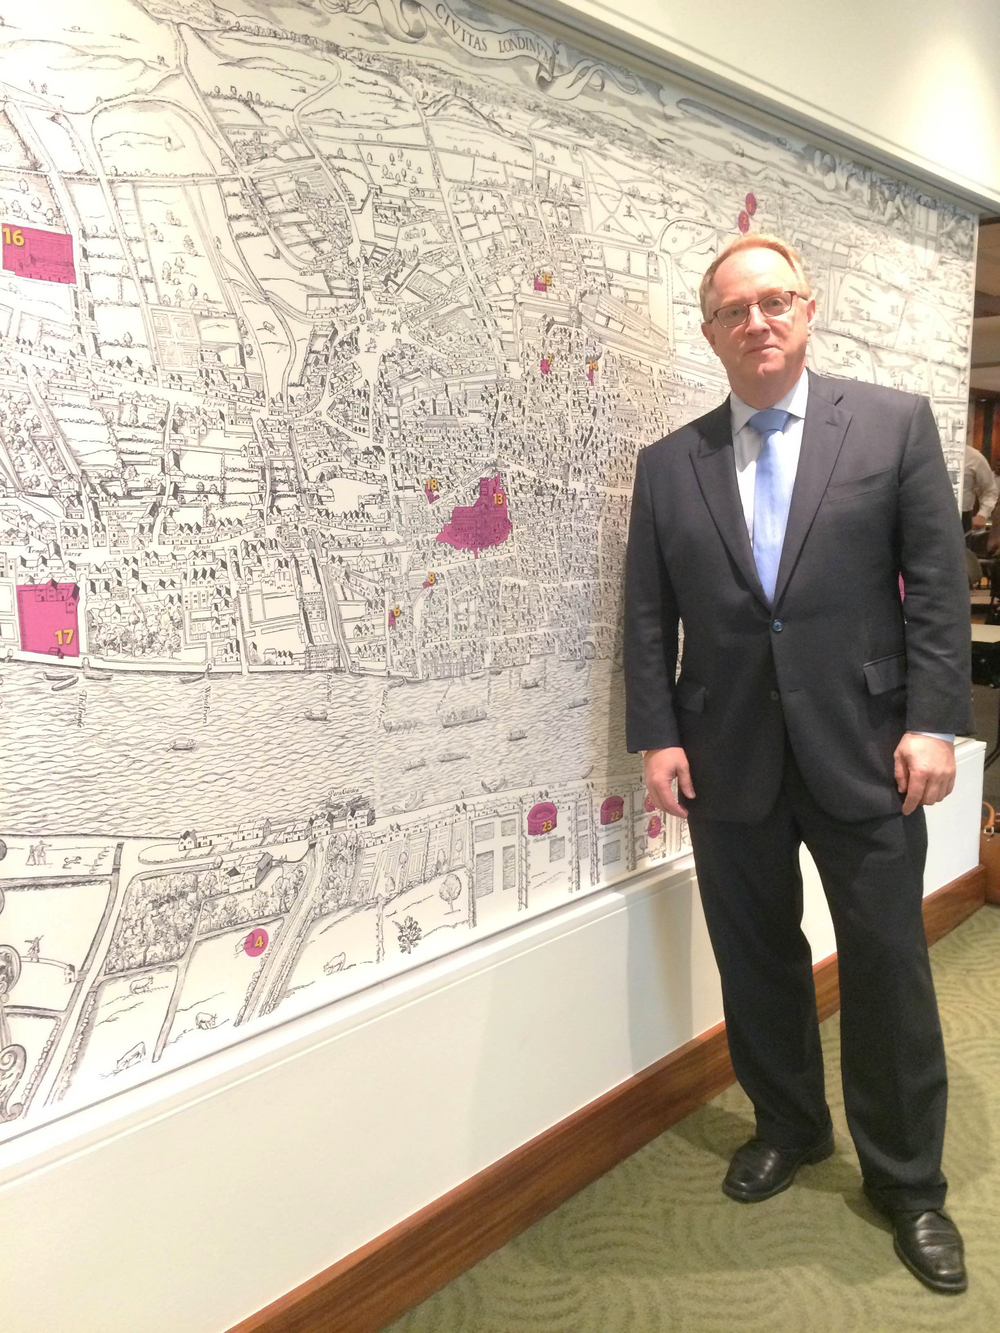 Jim Thomas unveiled details of his latest projects at last week's meeting with the KC Downtowners.